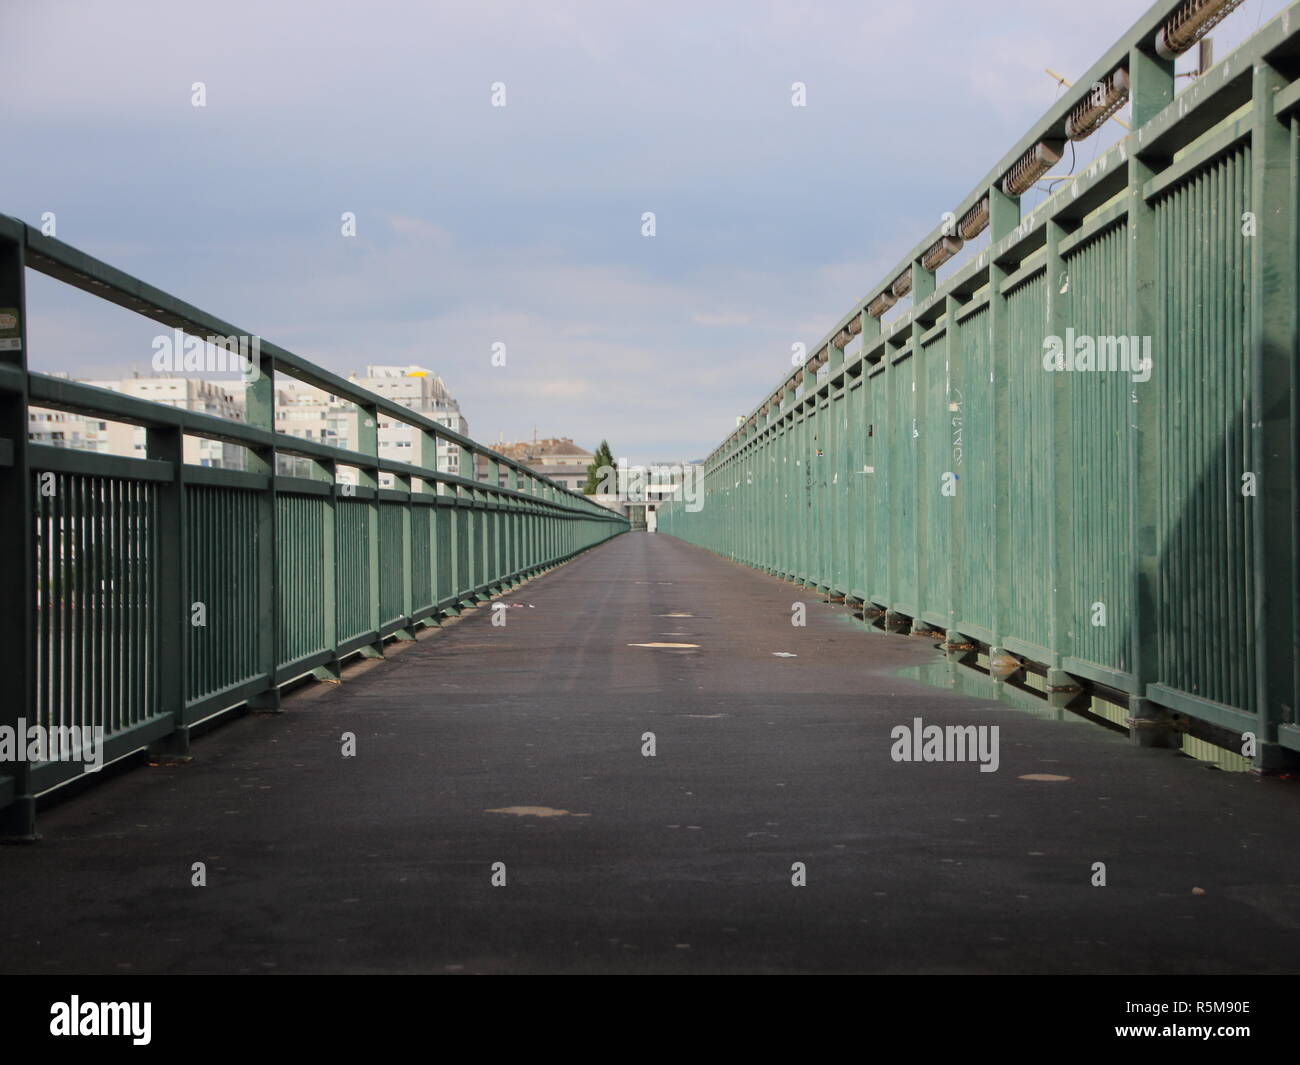 Long Asphalt Footpath with Green Metal Banisters Perspective Stock Photo